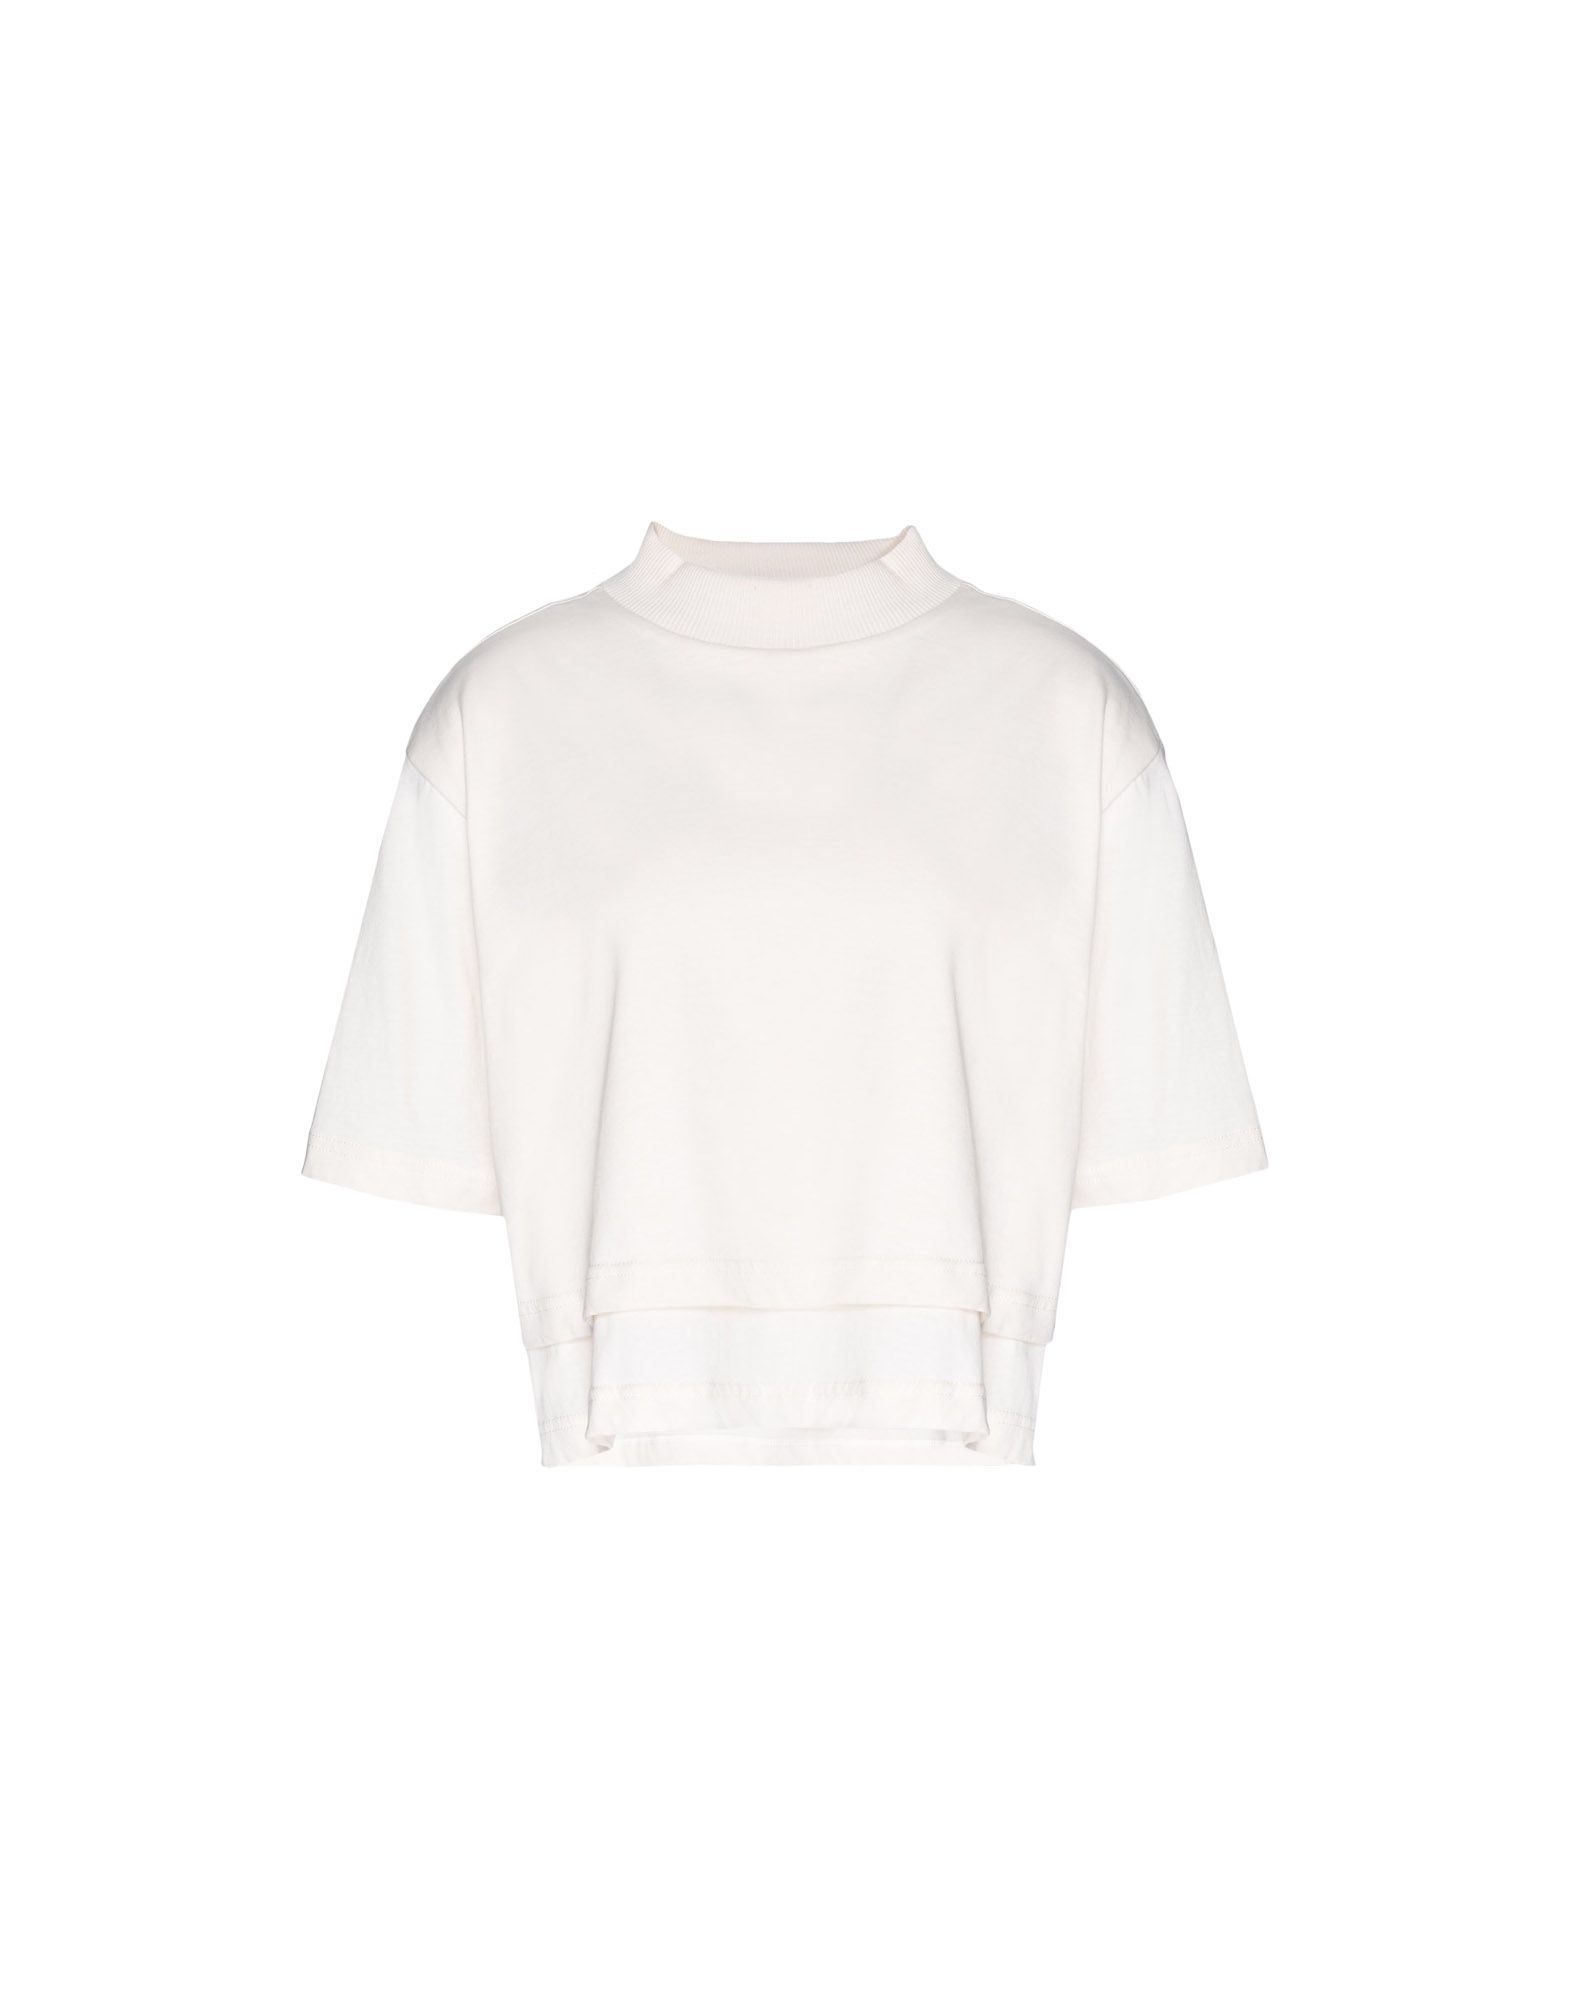 Y-3 Y-3 Stacked Logo Cropped Tee T シャツ レディース f